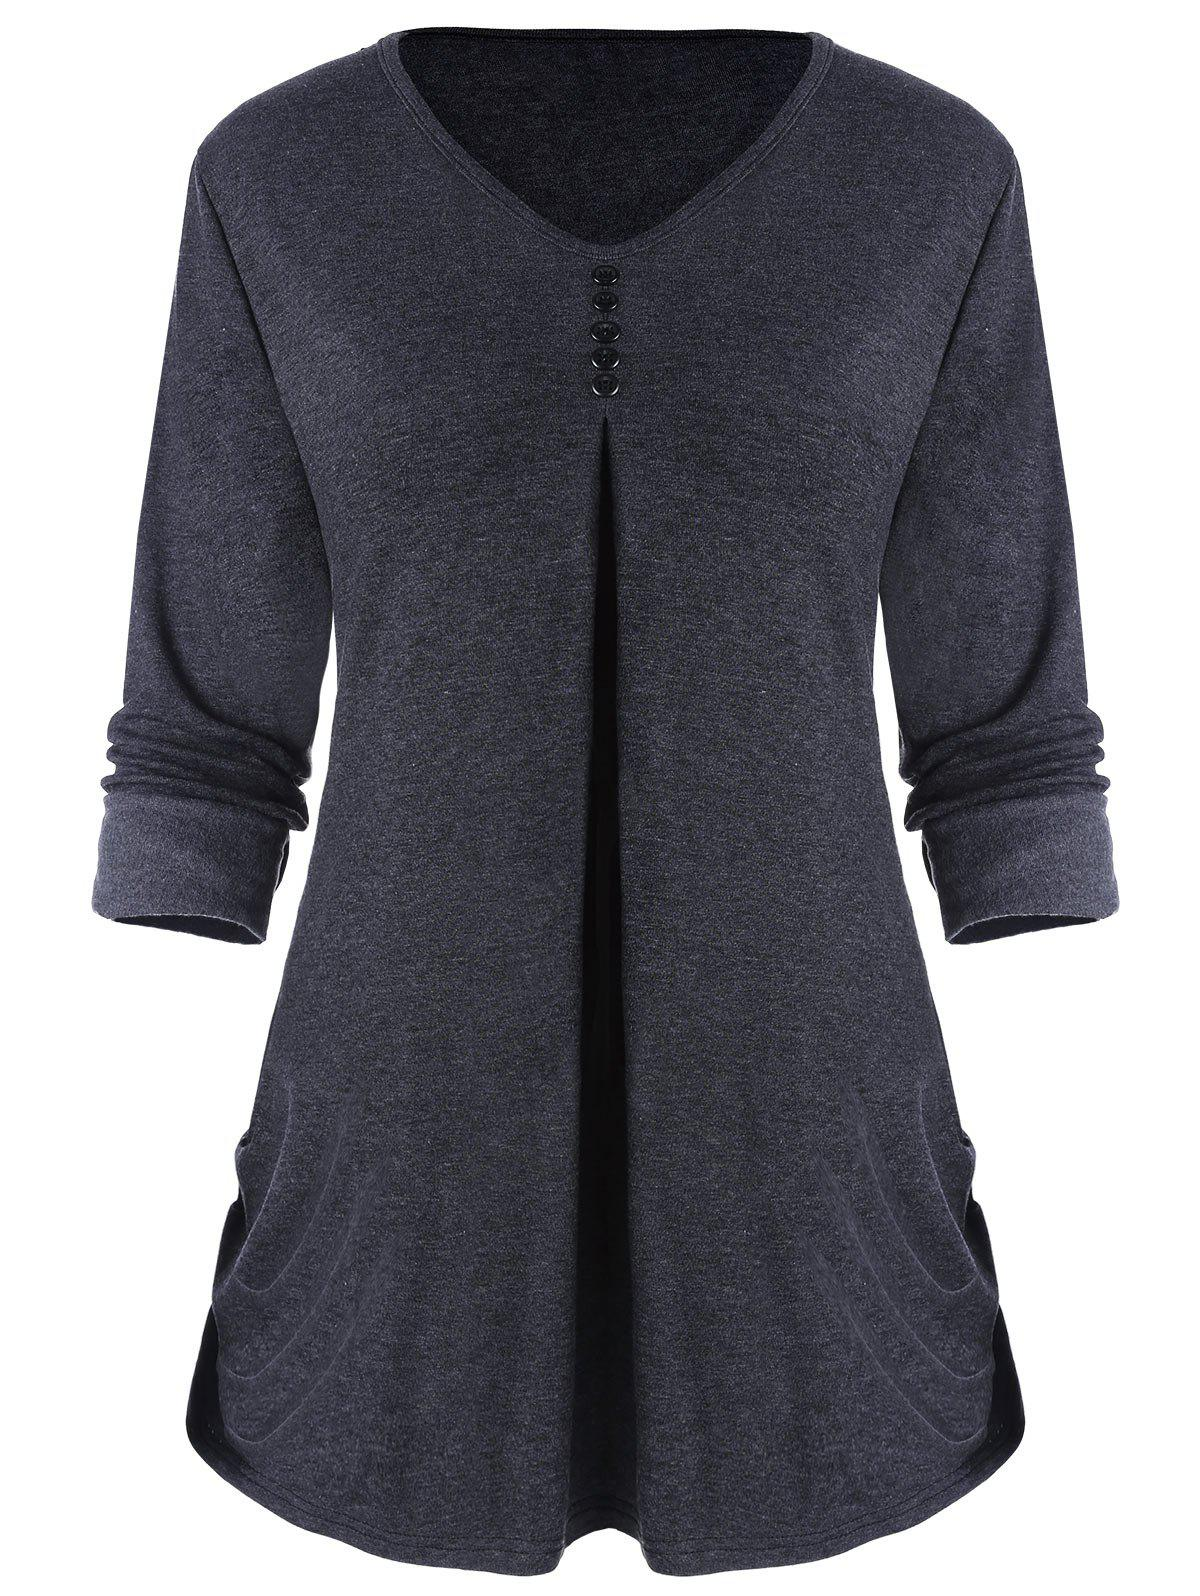 Side Ruched V Neck Top with Buttons - DEEP GRAY 2XL